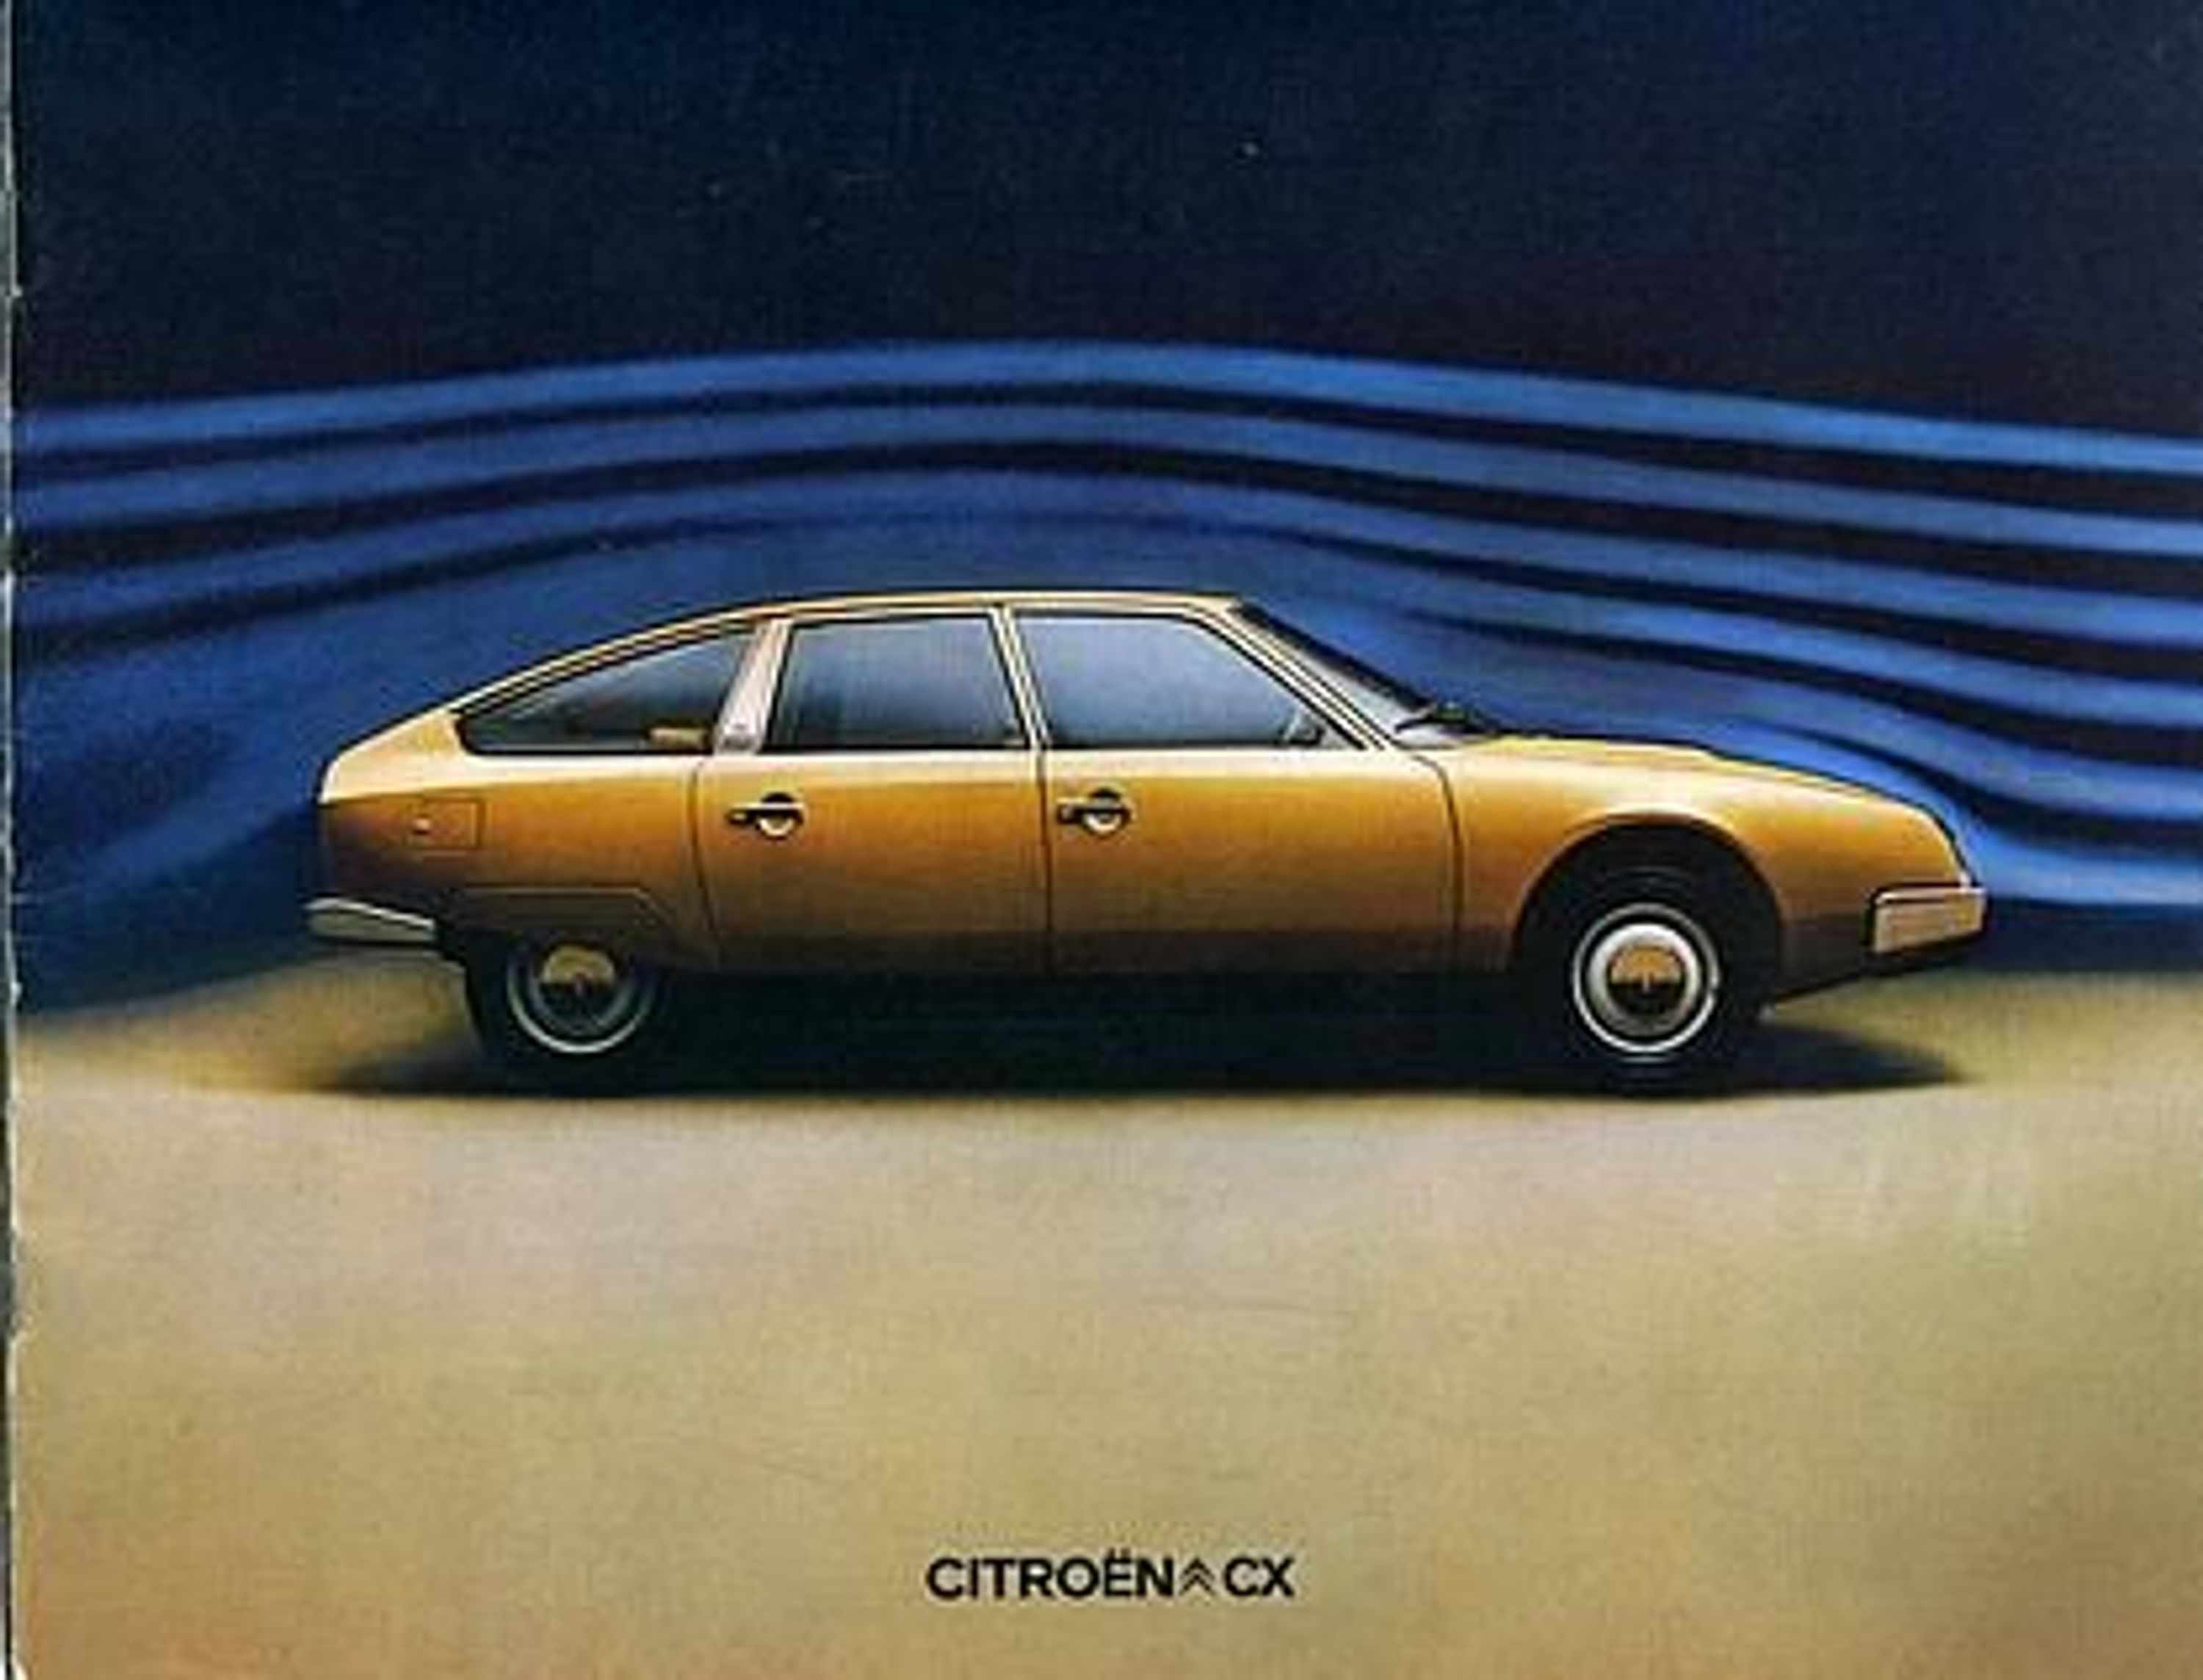 citroen cx prospekt d 1975 gratisversand gebraucht kaufen bei. Black Bedroom Furniture Sets. Home Design Ideas